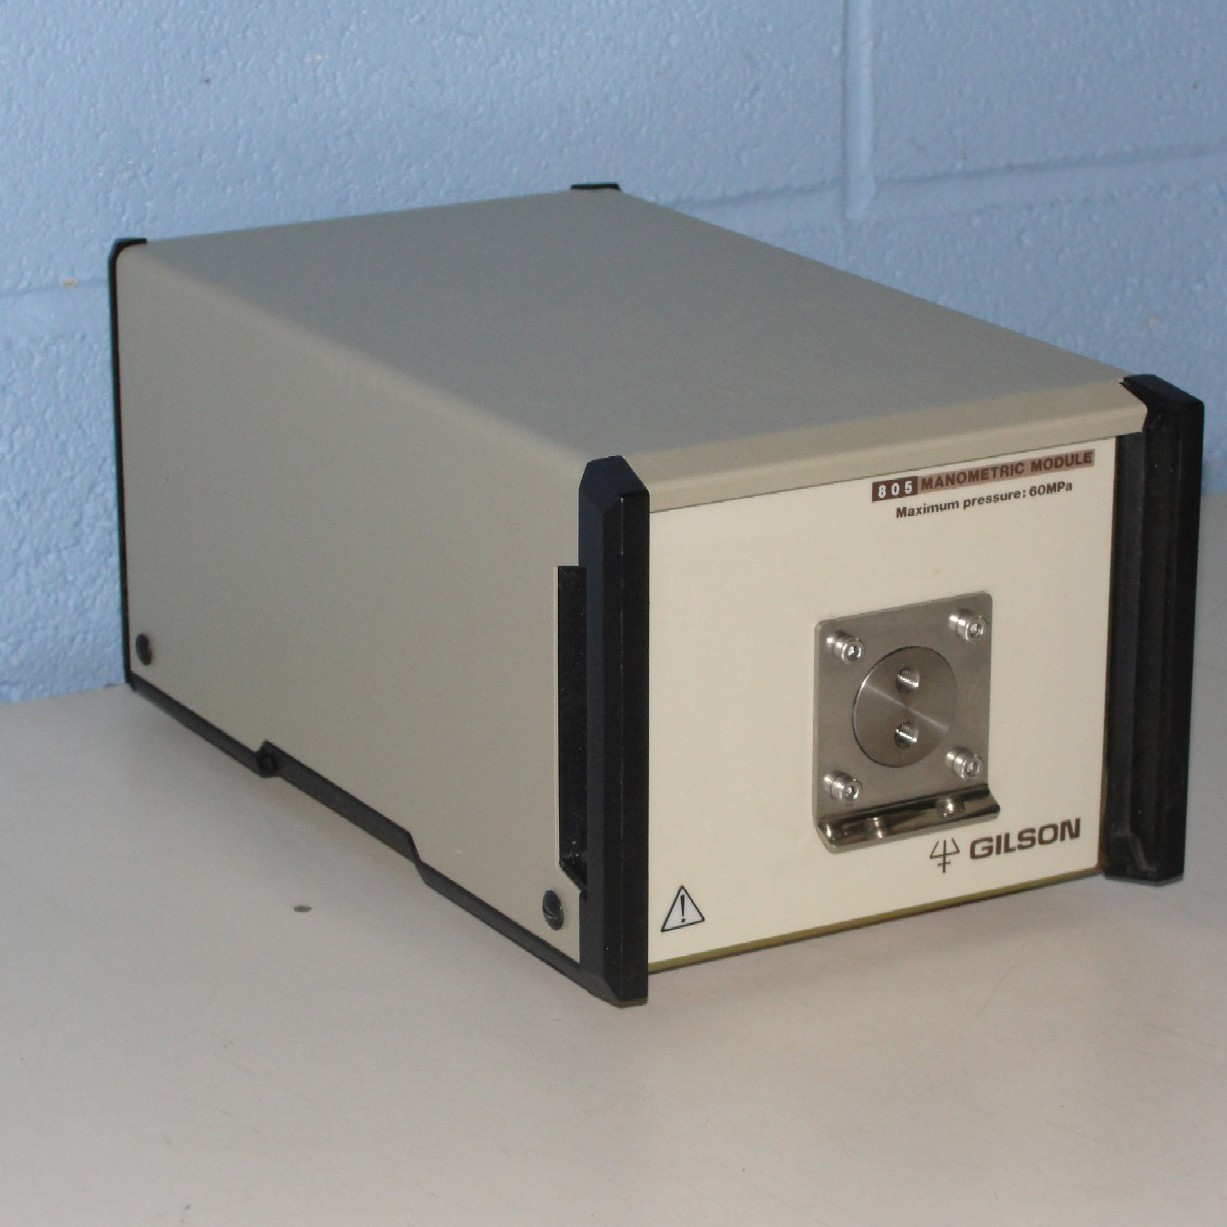 Gilson 805 Manometric Module Image